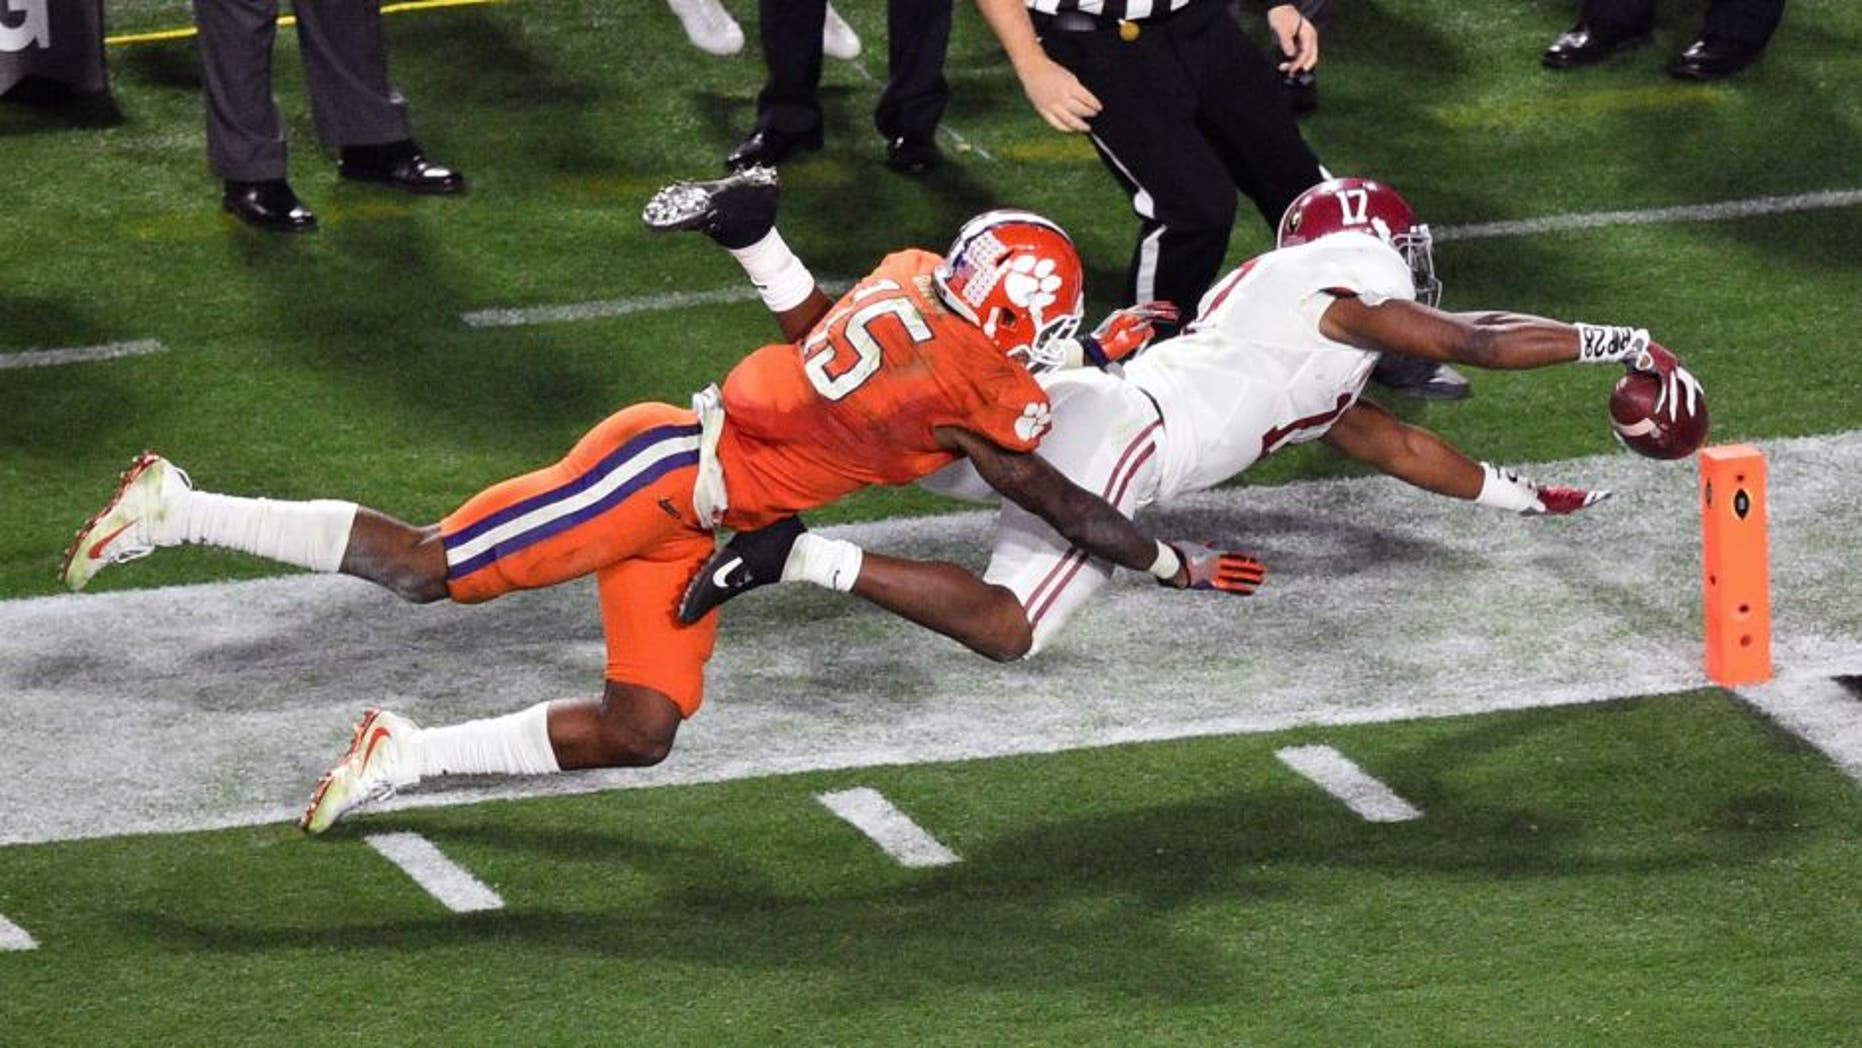 Jan 11, 2016; Glendale, AZ, USA; Alabama Crimson Tide running back Kenyan Drake (17) scores a touchdown while guarded by Clemson Tigers safety T.J. Green (15) during the fourth quarter in the 2016 CFP National Championship at University of Phoenix Stadium. Mandatory Credit: Gary A. Vasquez-USA TODAY Sports